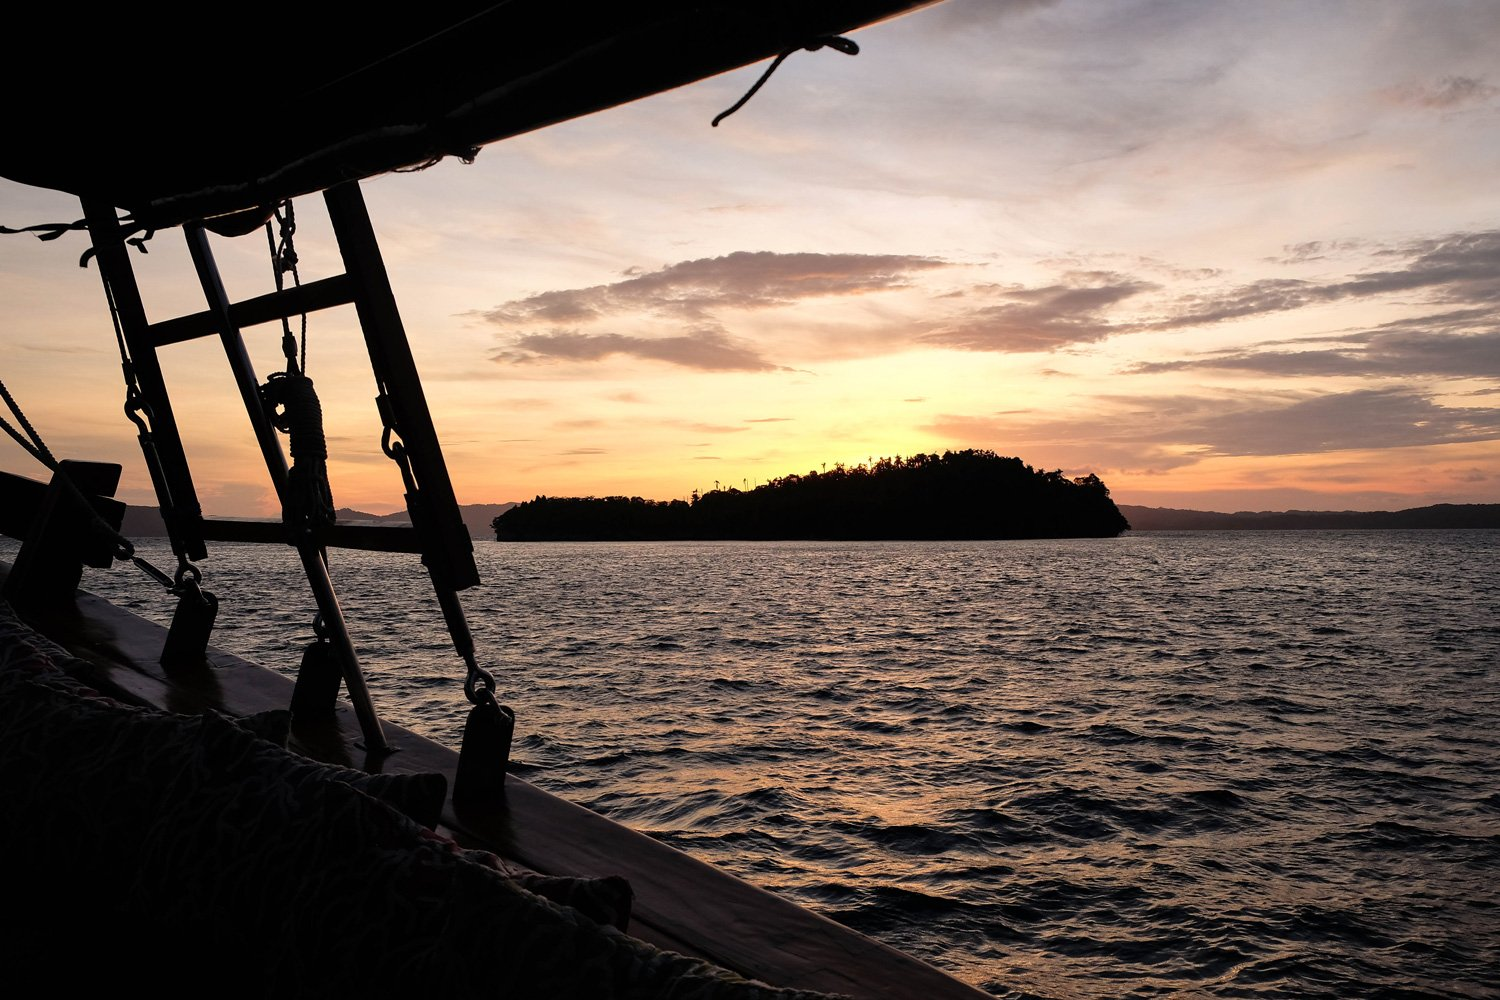 Sunset over Raja Ampat